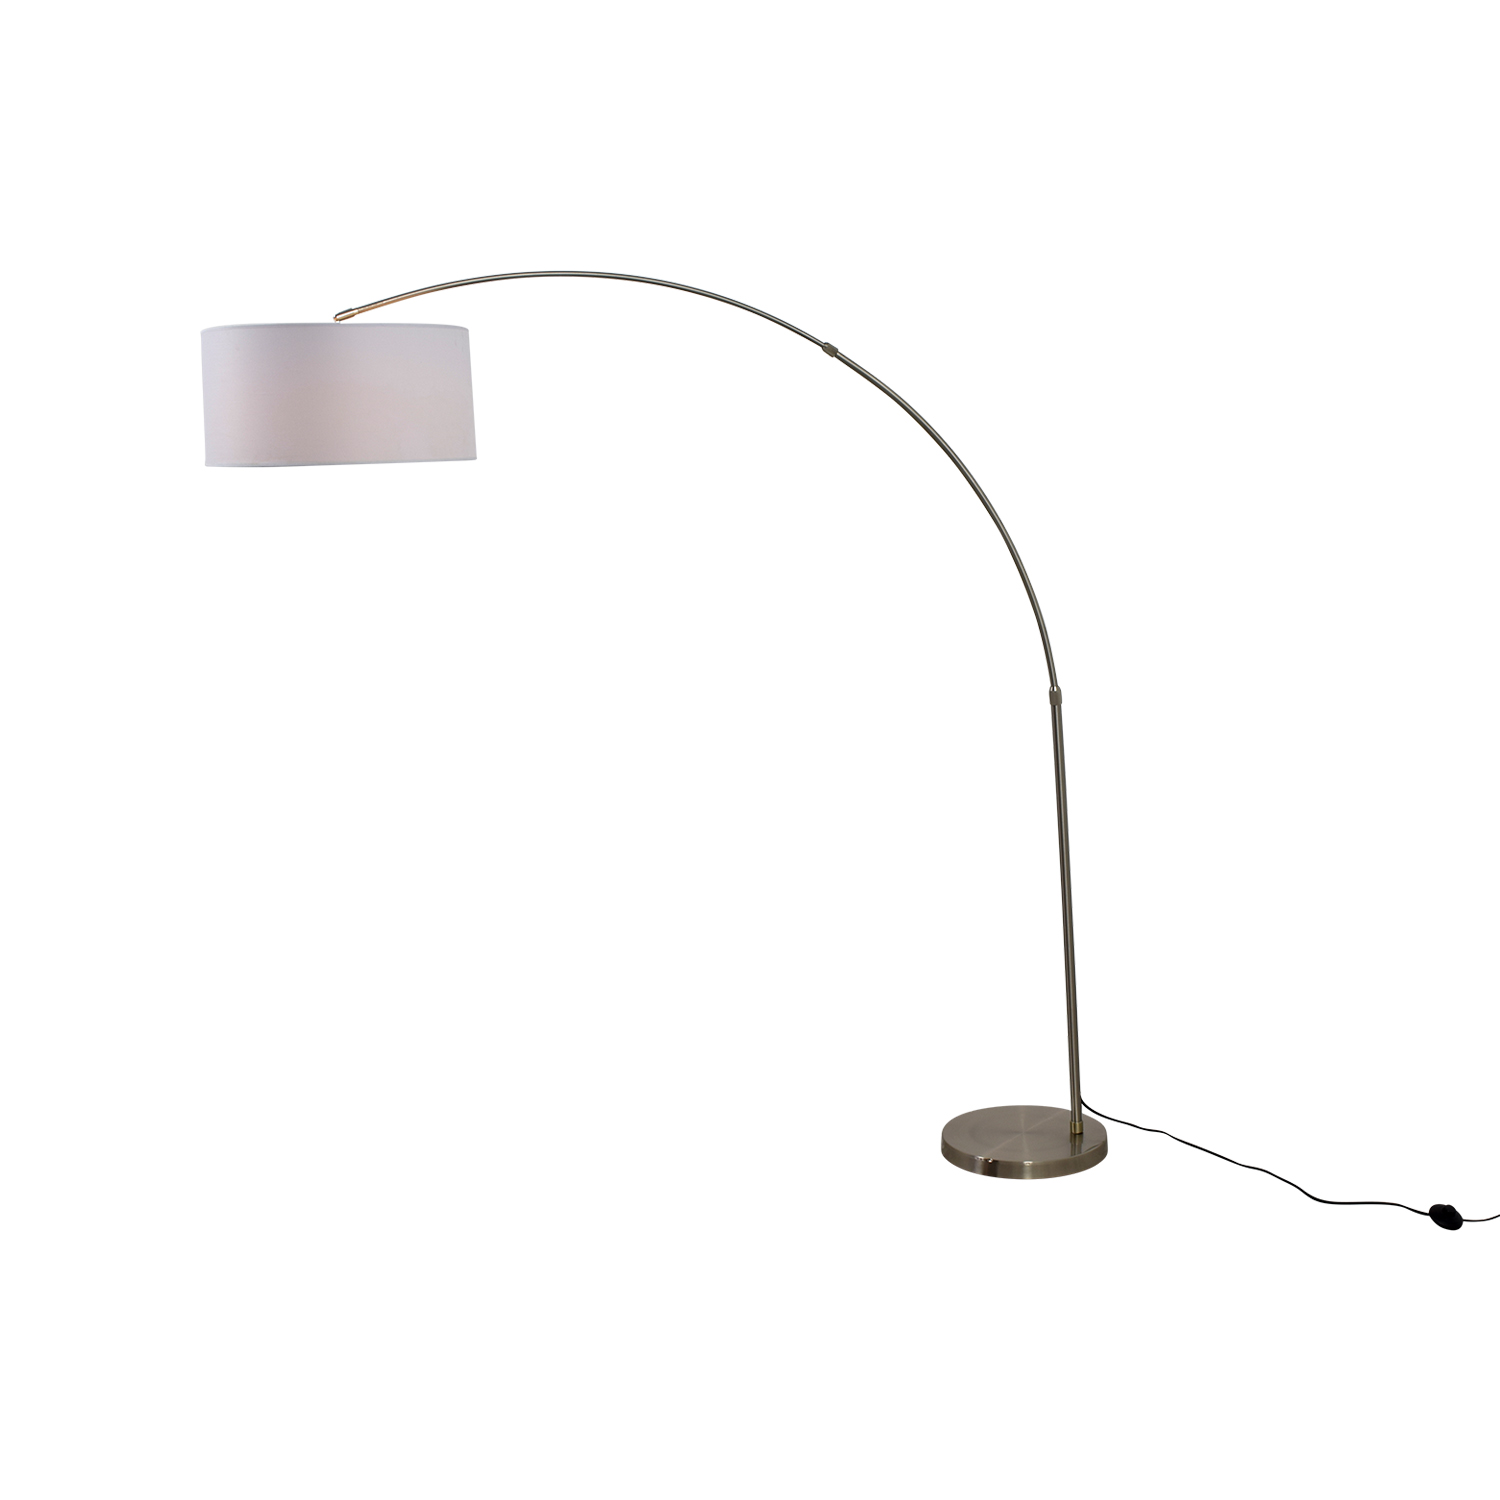 Lumisource Lumisource Floor Lamp dimensions